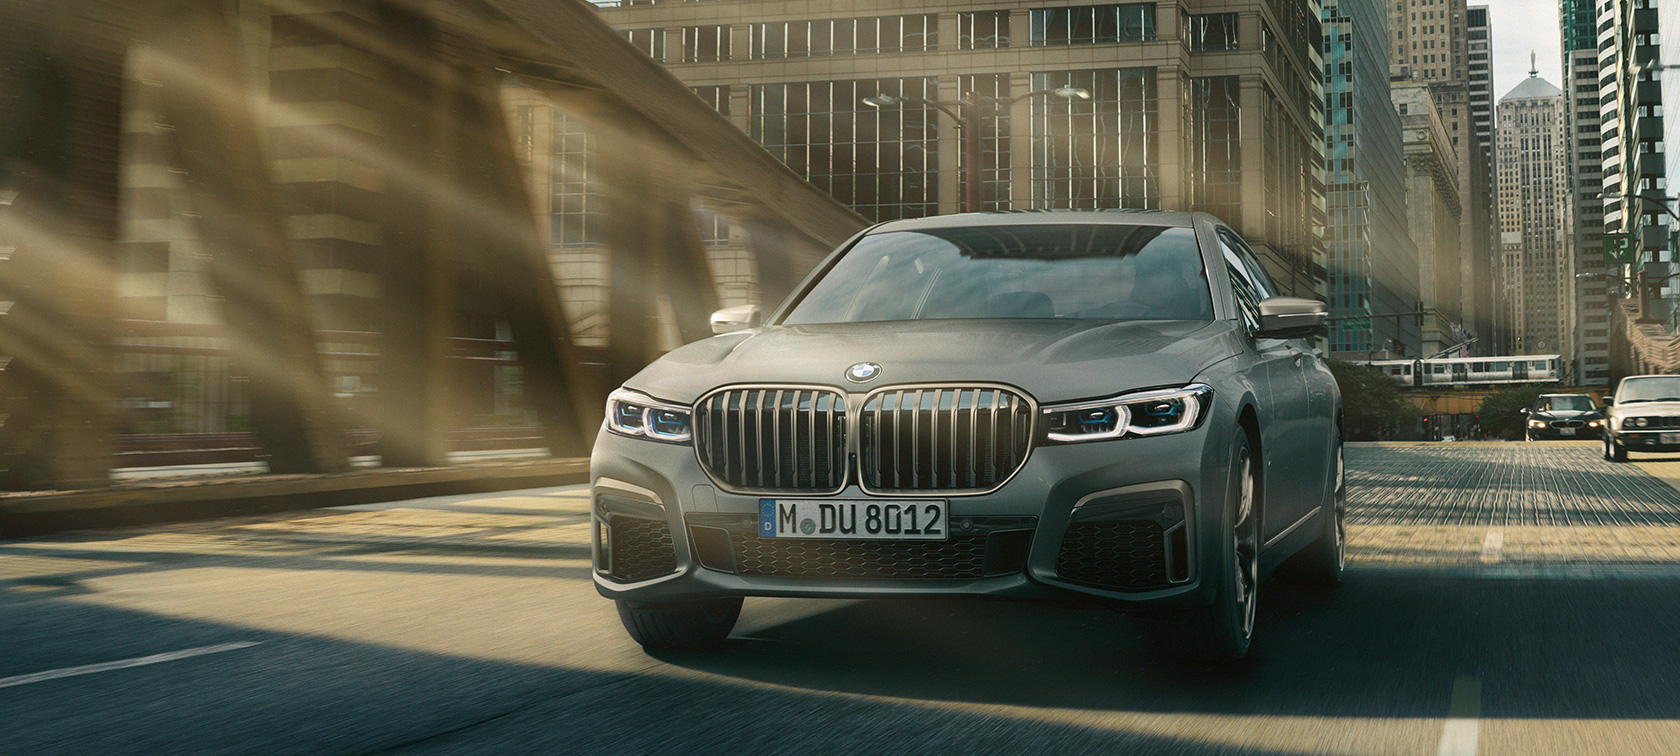 M760Li xDrive Sedan, BMW M760Li specifications, technical data